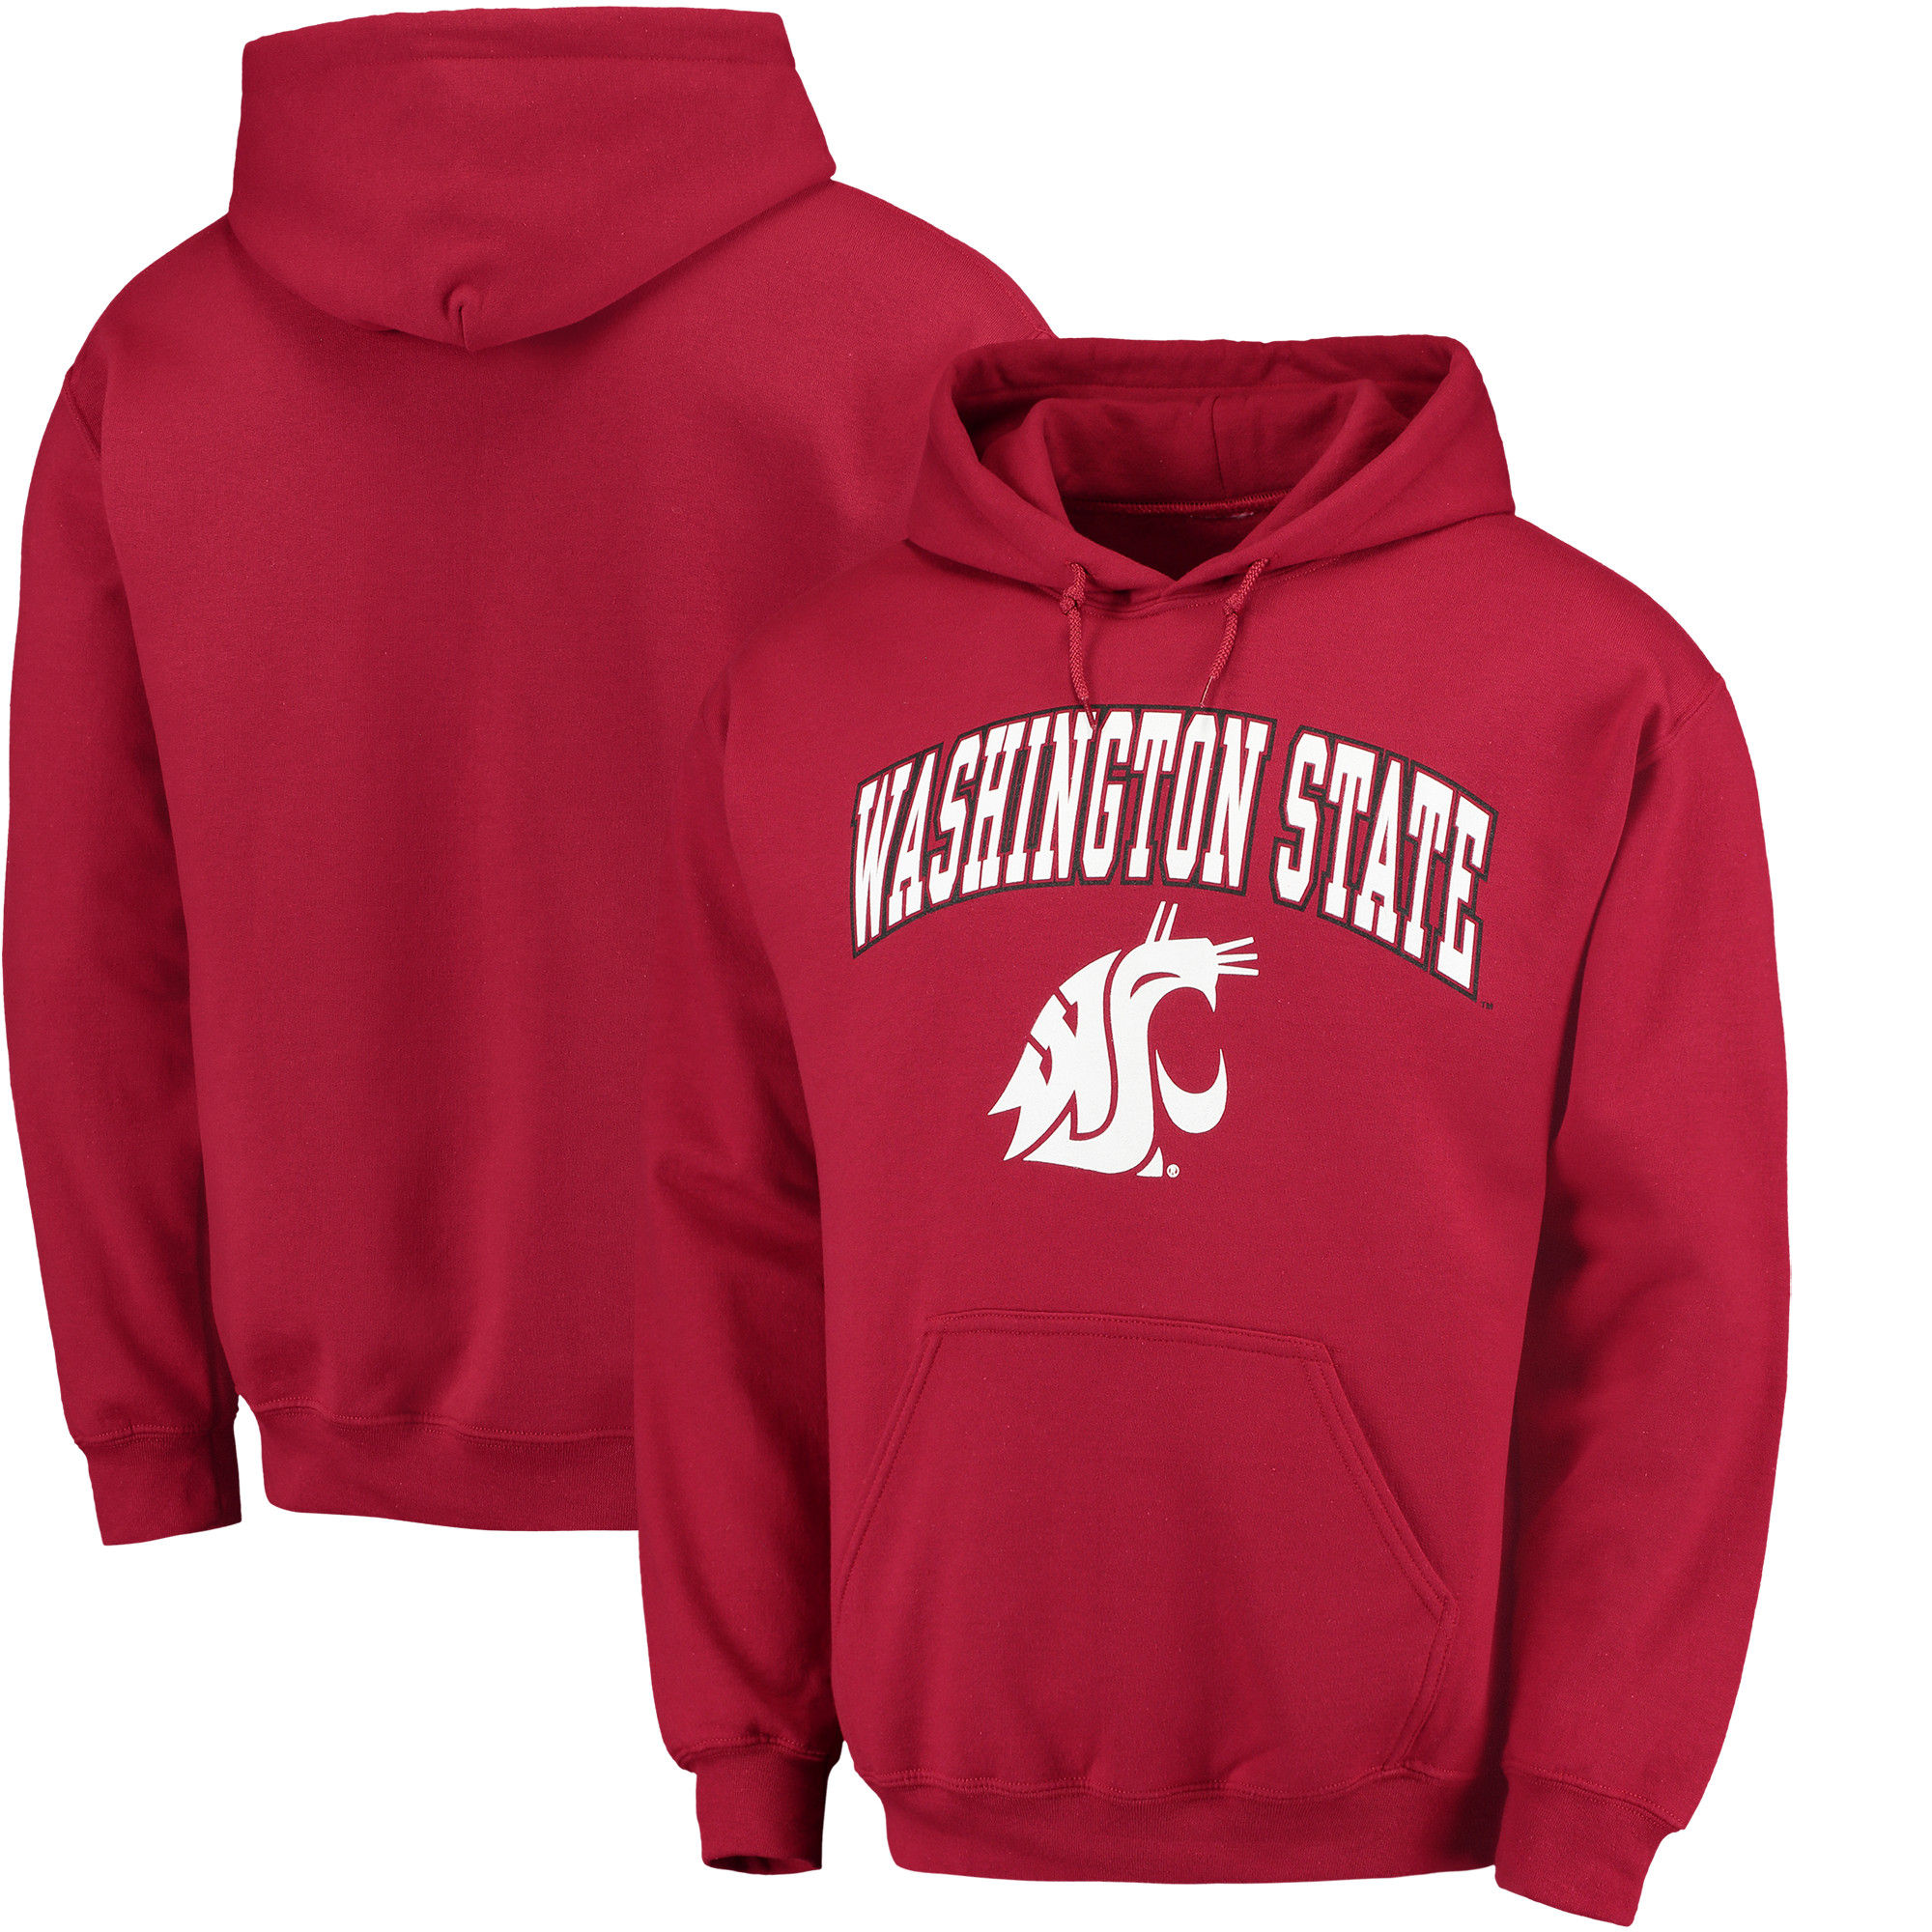 Washington State Cougars Red Campus Pullover Hoodie